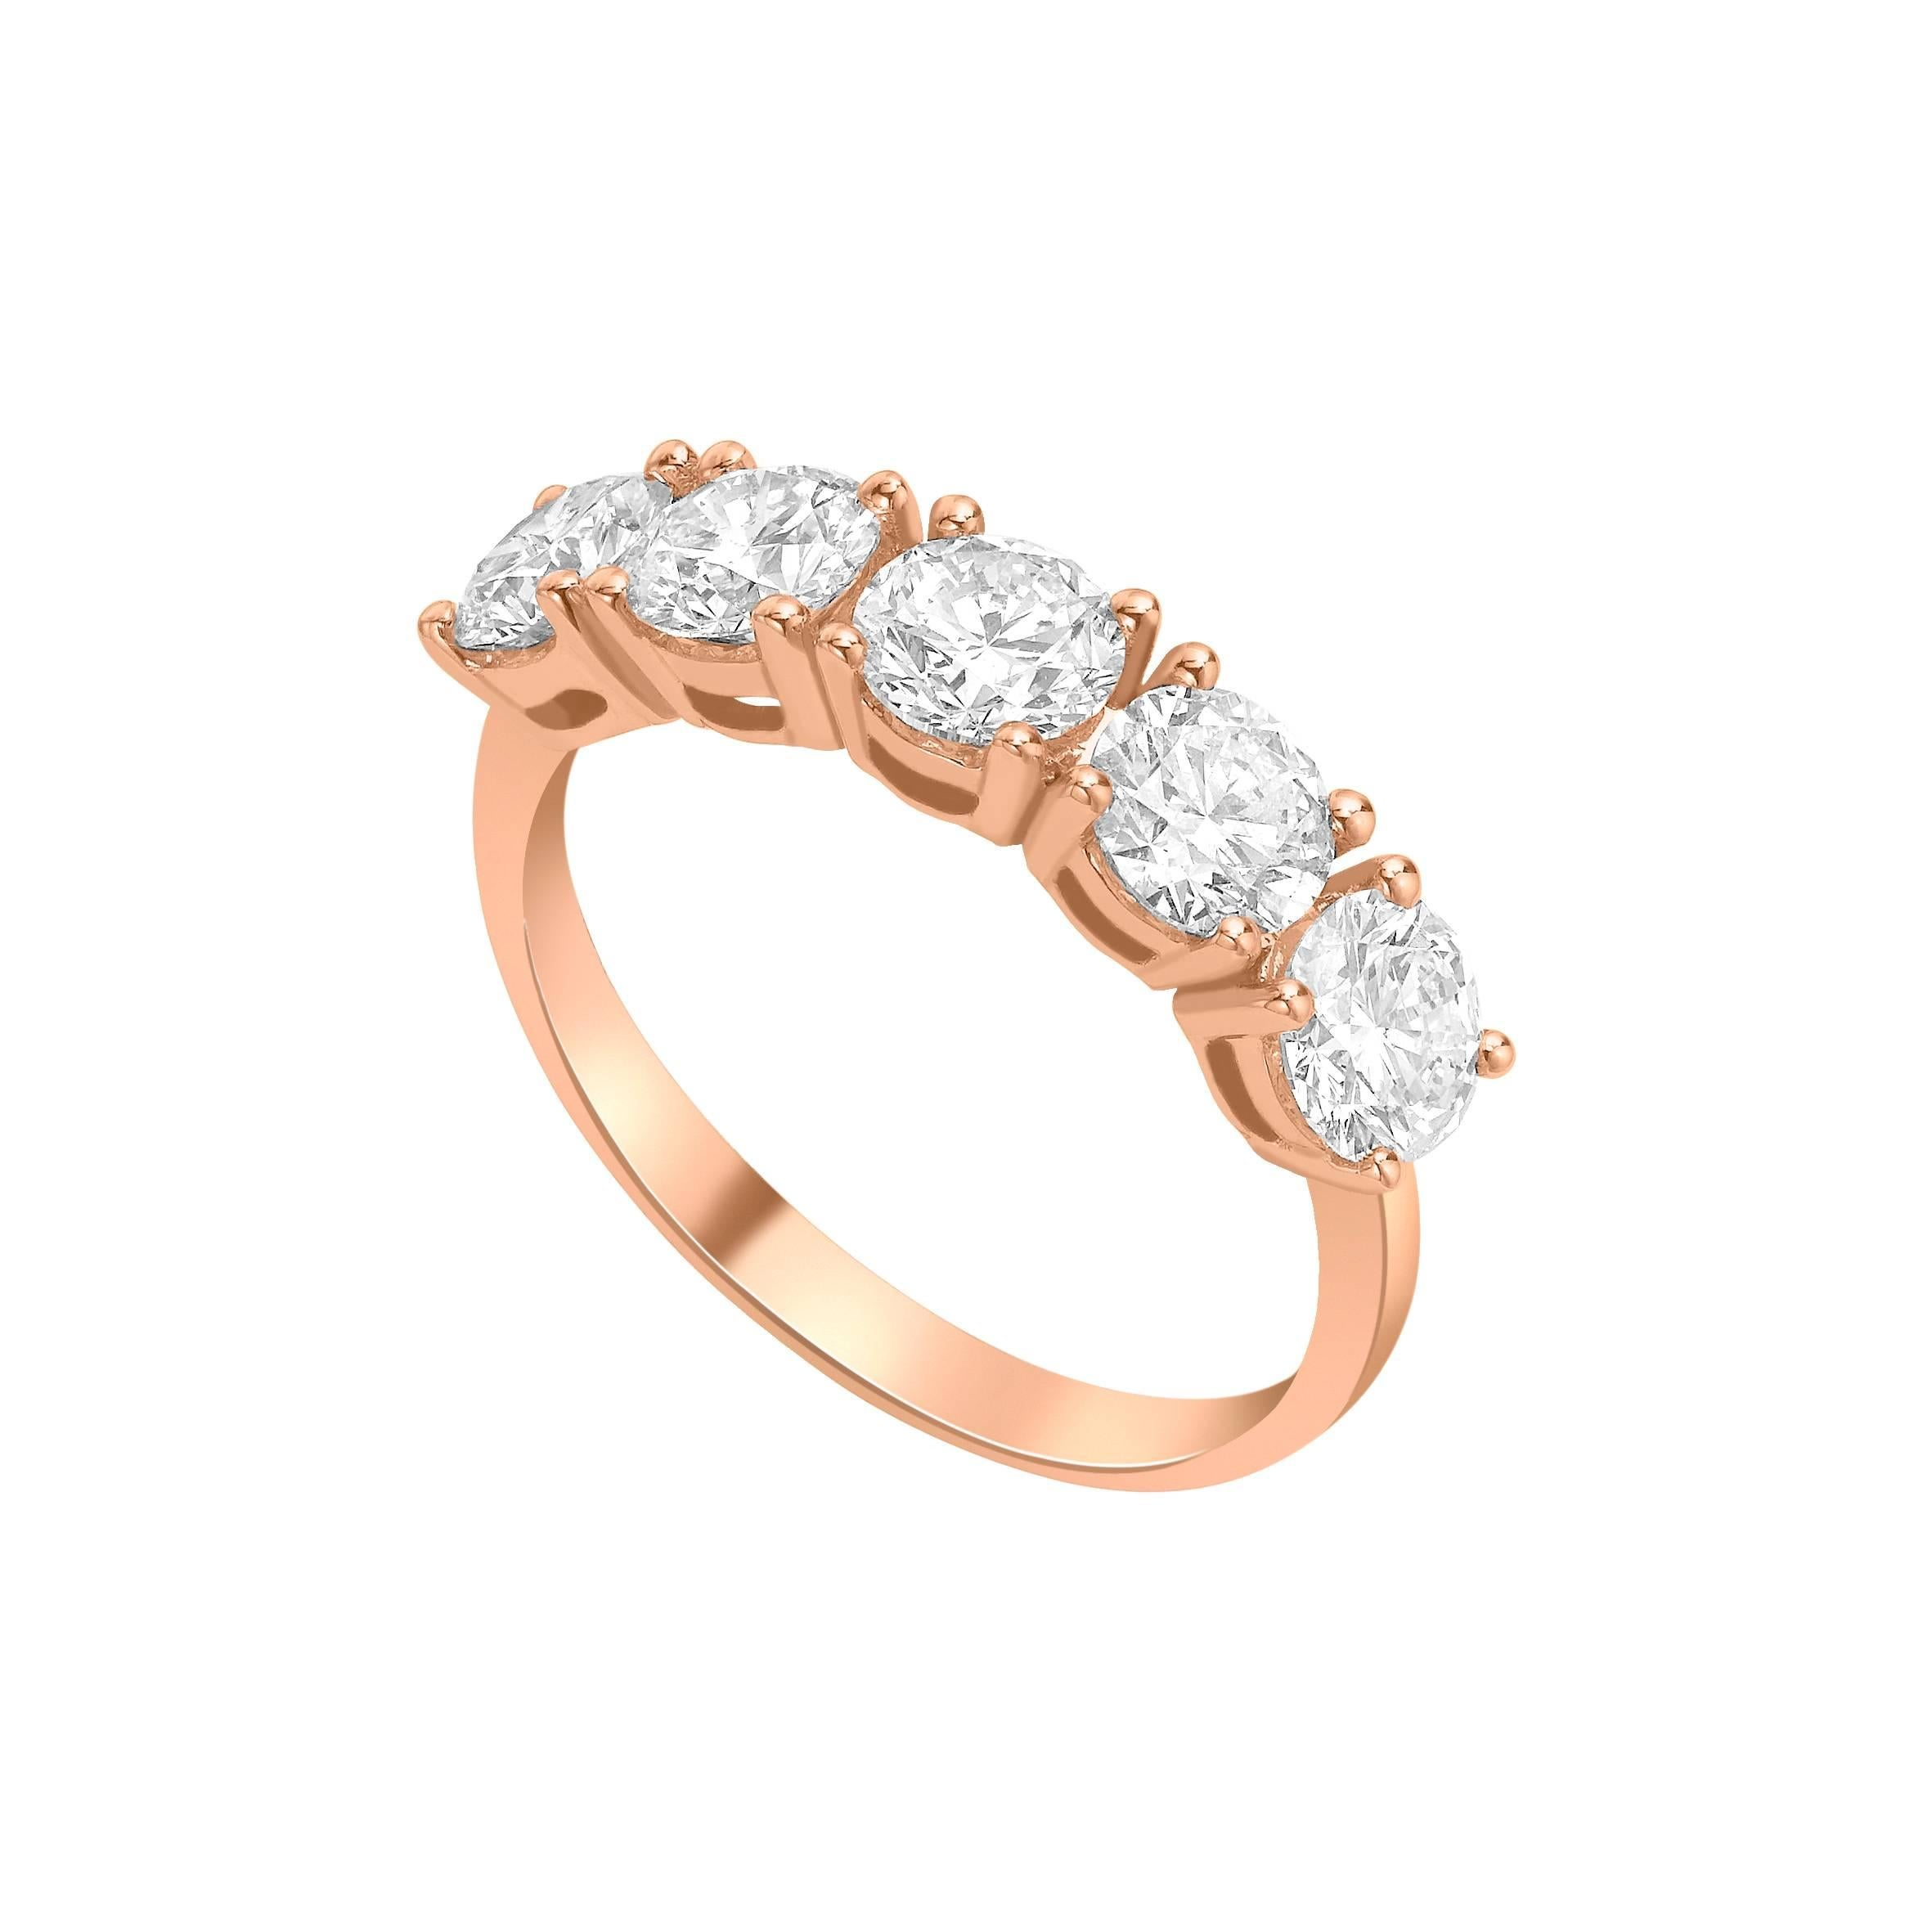 argyle bands rose category engagement wedding band river jewellers pink brisbane gold matching white ring diamonds diamond with and